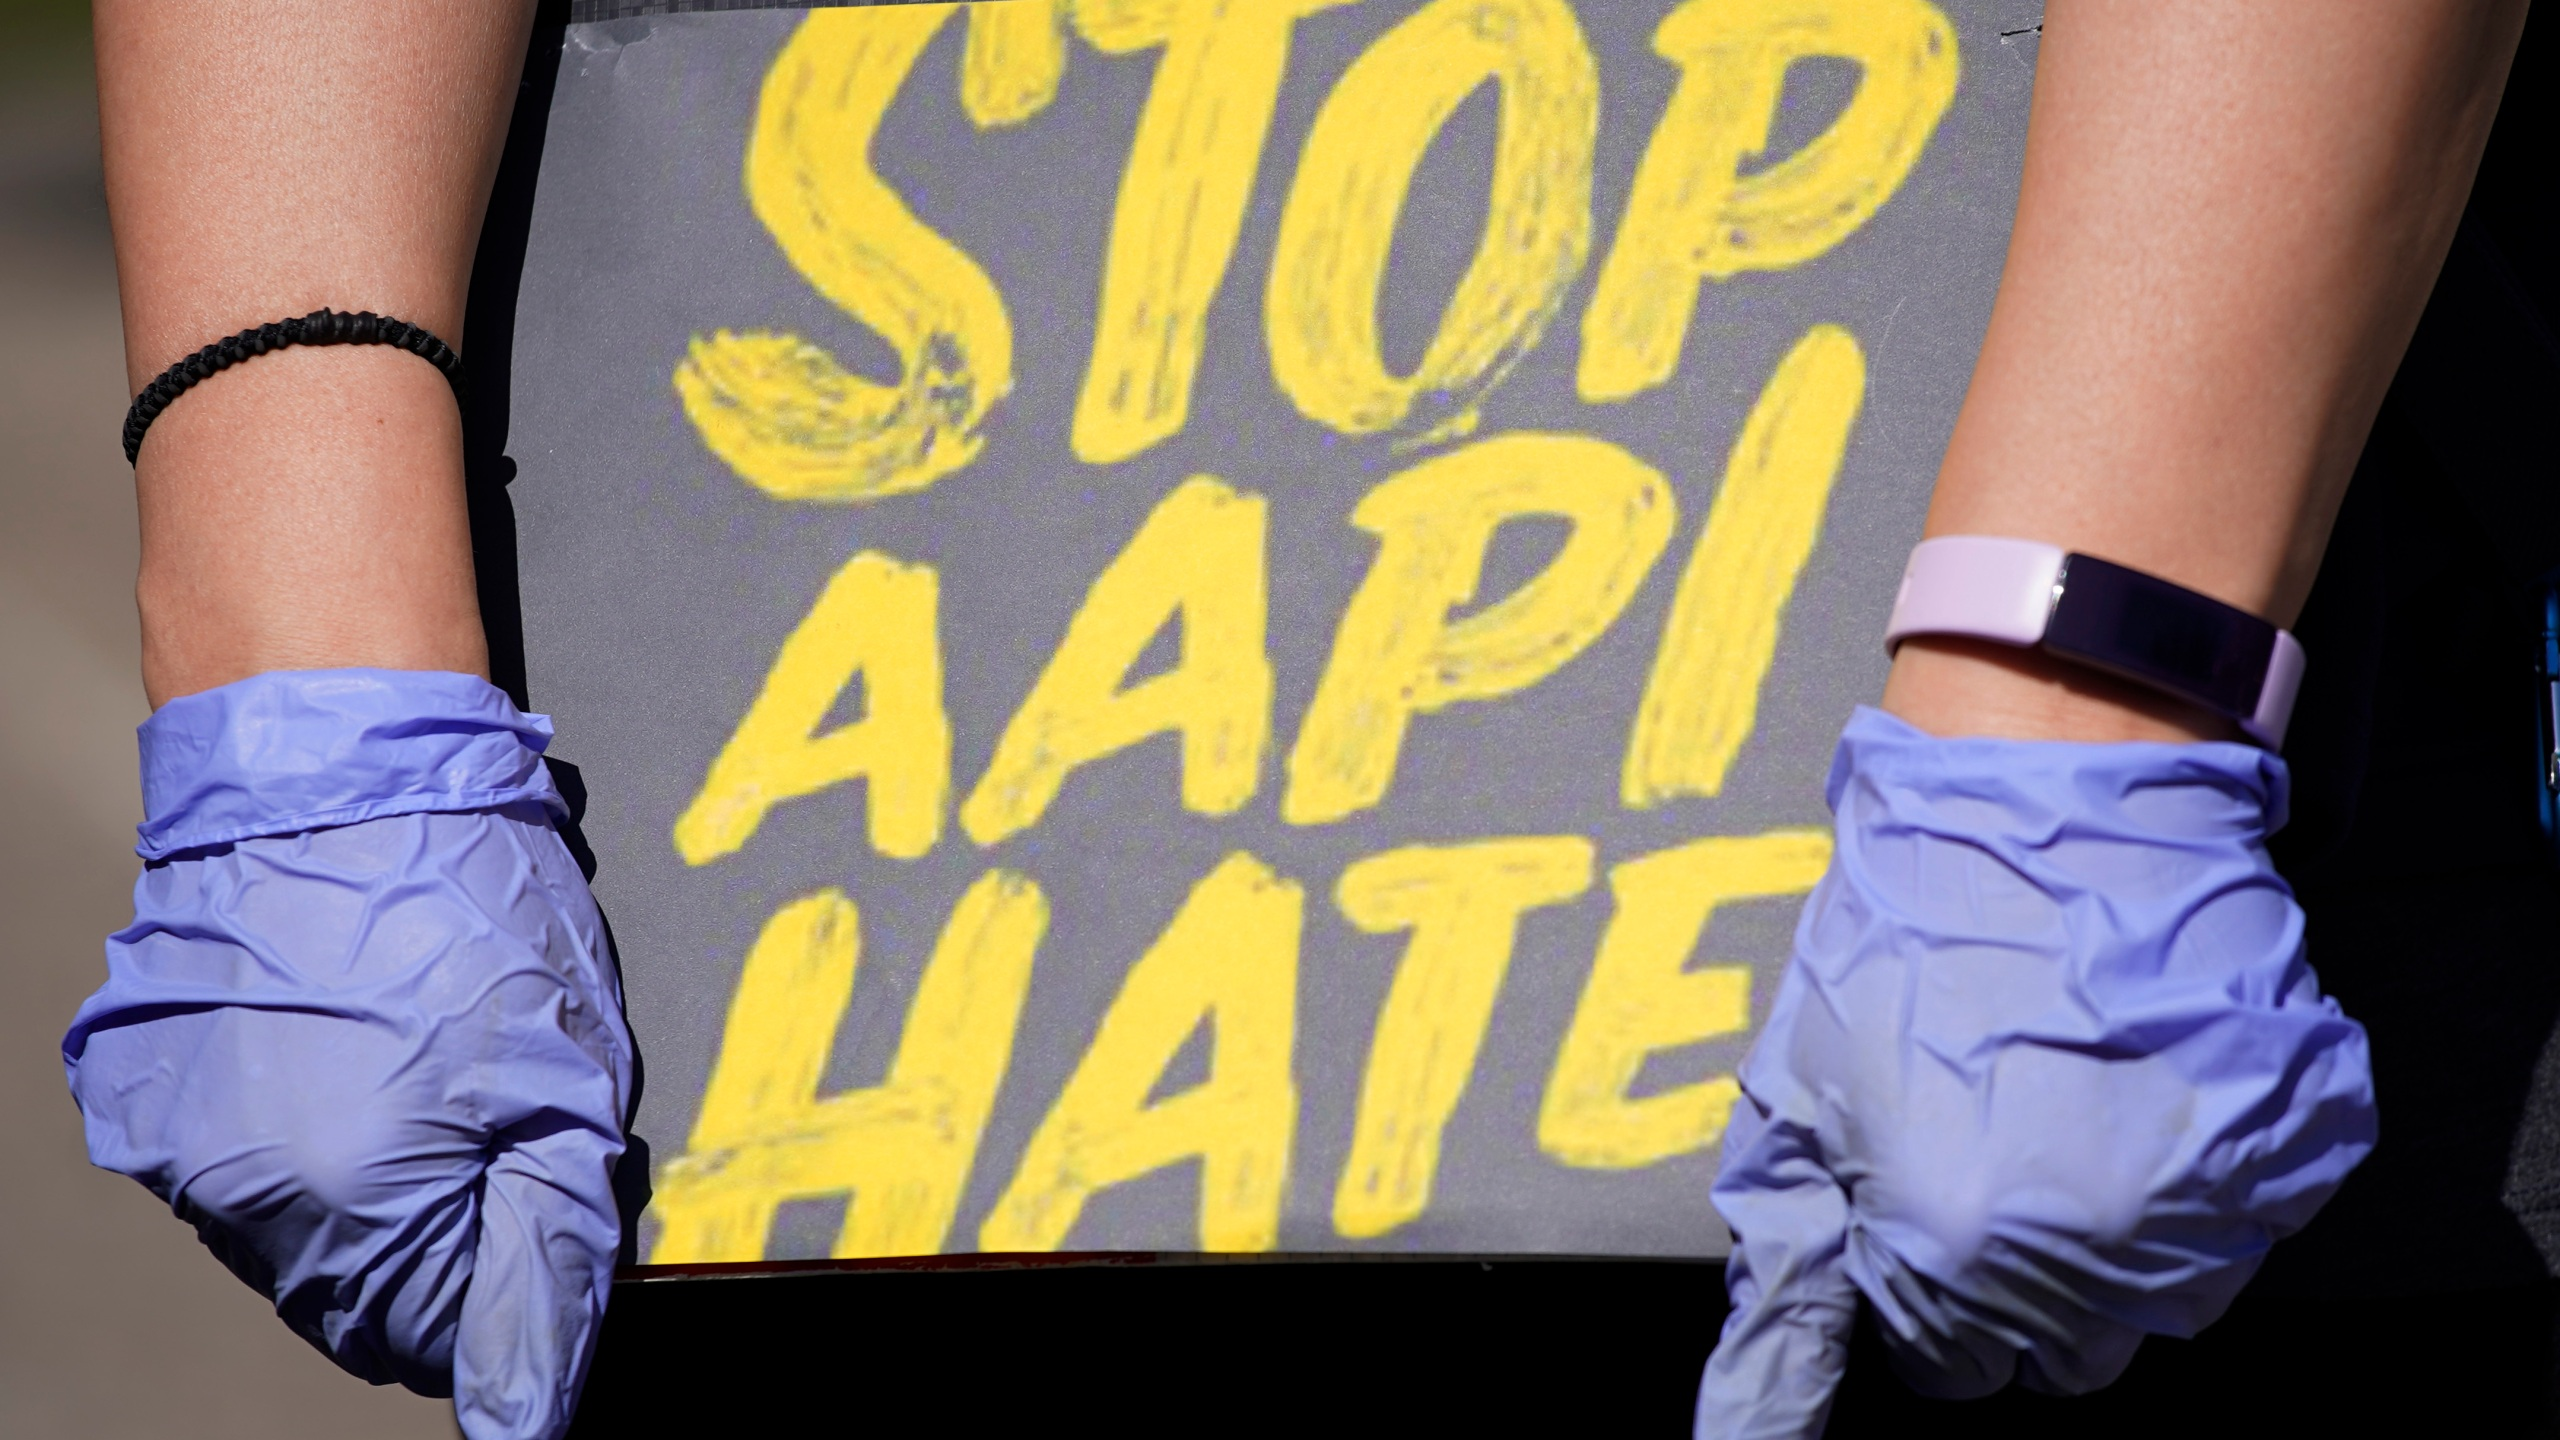 In this March 20, 2021, file photo, woman holds a sign and attends a rally to support stop AAPI hate at the Logan Square Monument in Chicago. (Nam Y. Huh/Associated Press)